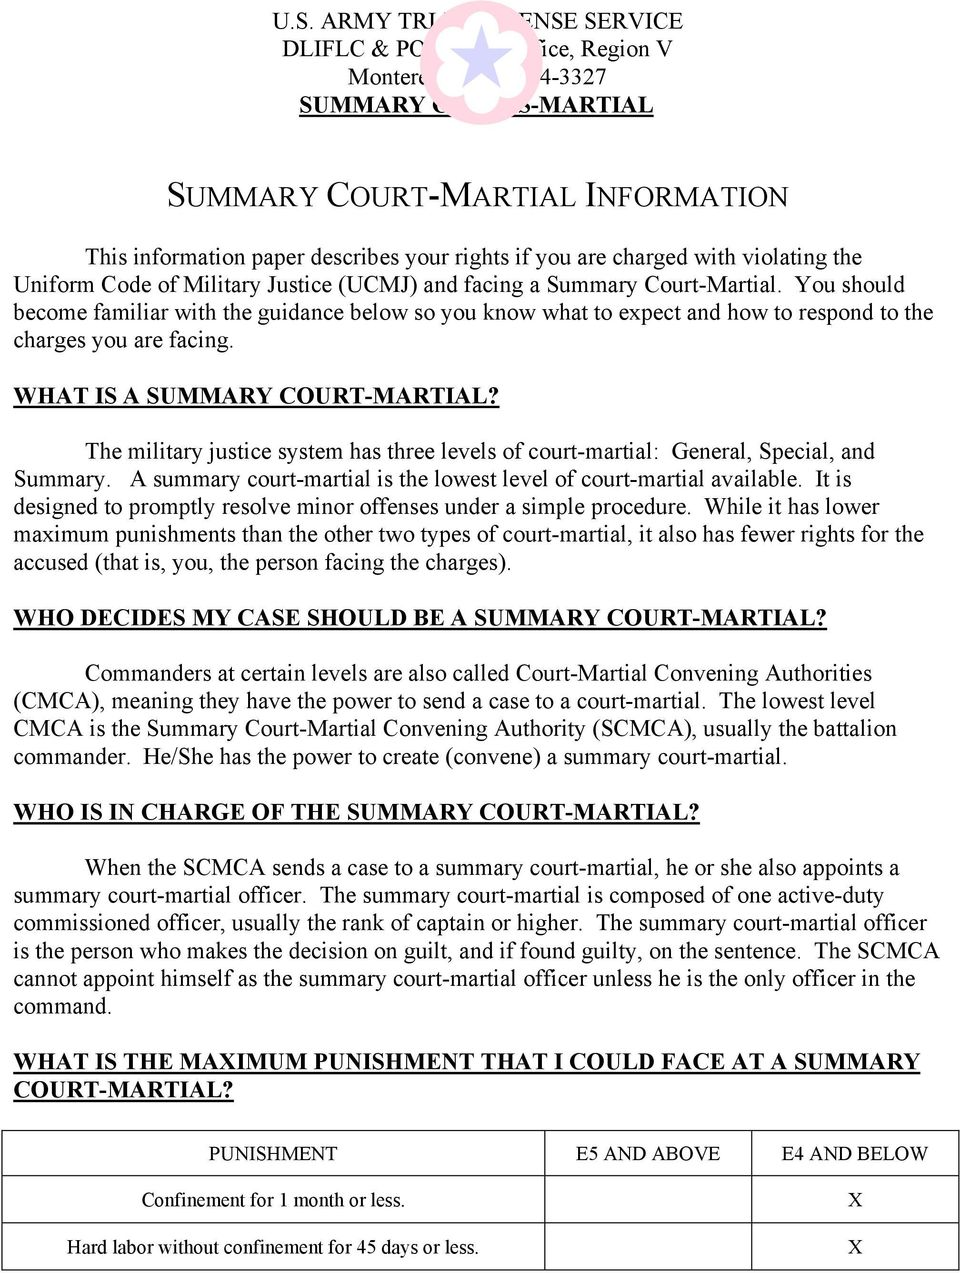 You should become familiar with the guidance below so you know what to expect and how to respond to the charges you are facing. WHAT IS A SUMMARY COURT-MARTIAL?